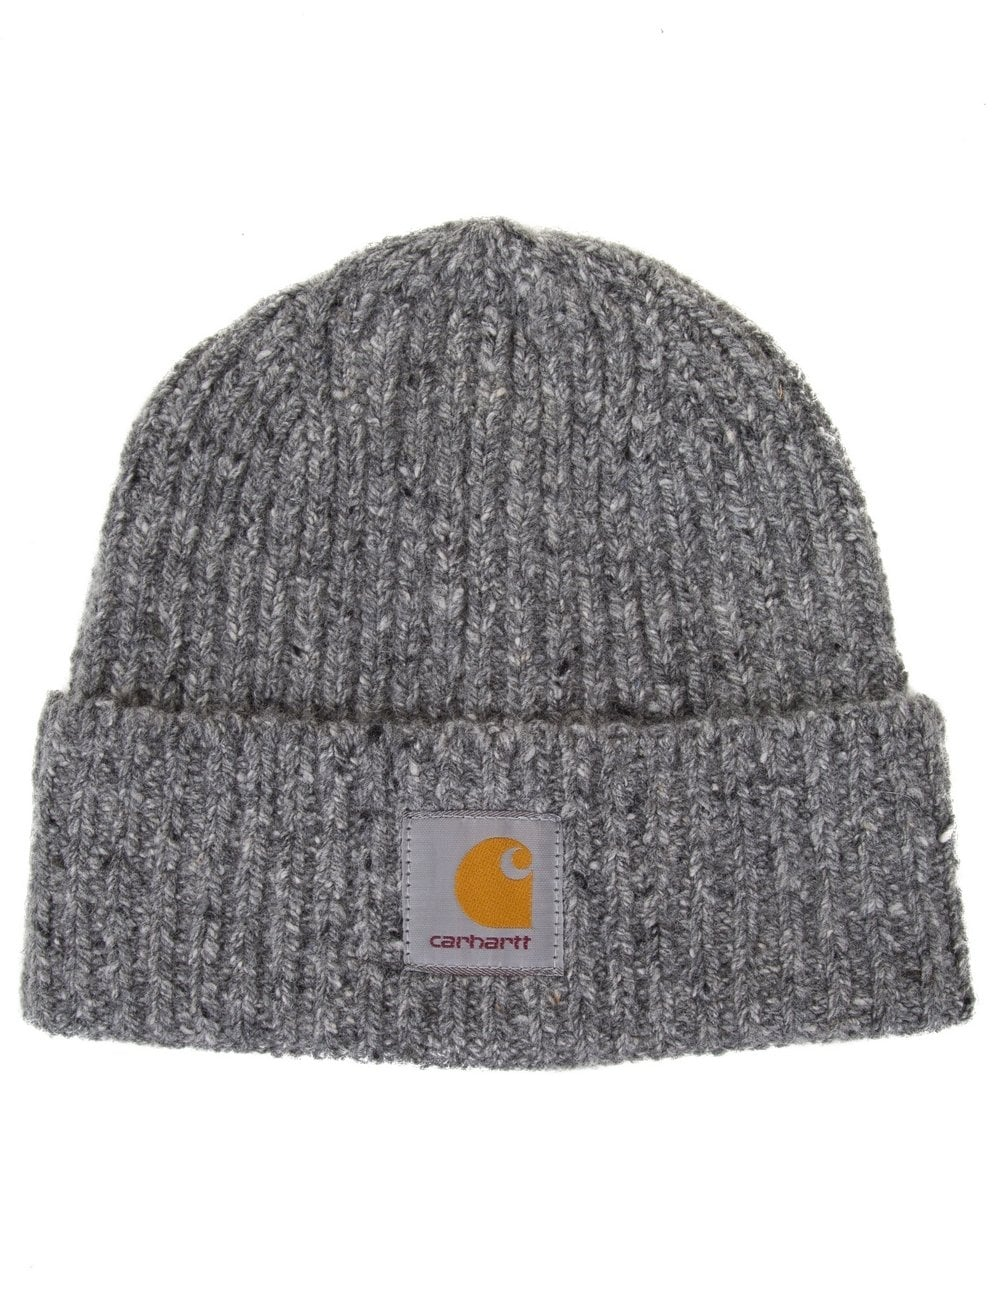 5eb49ee2d9bc1 Carhartt WIP Anglistic Beanie - Dark Grey Heather - Accessories from ...